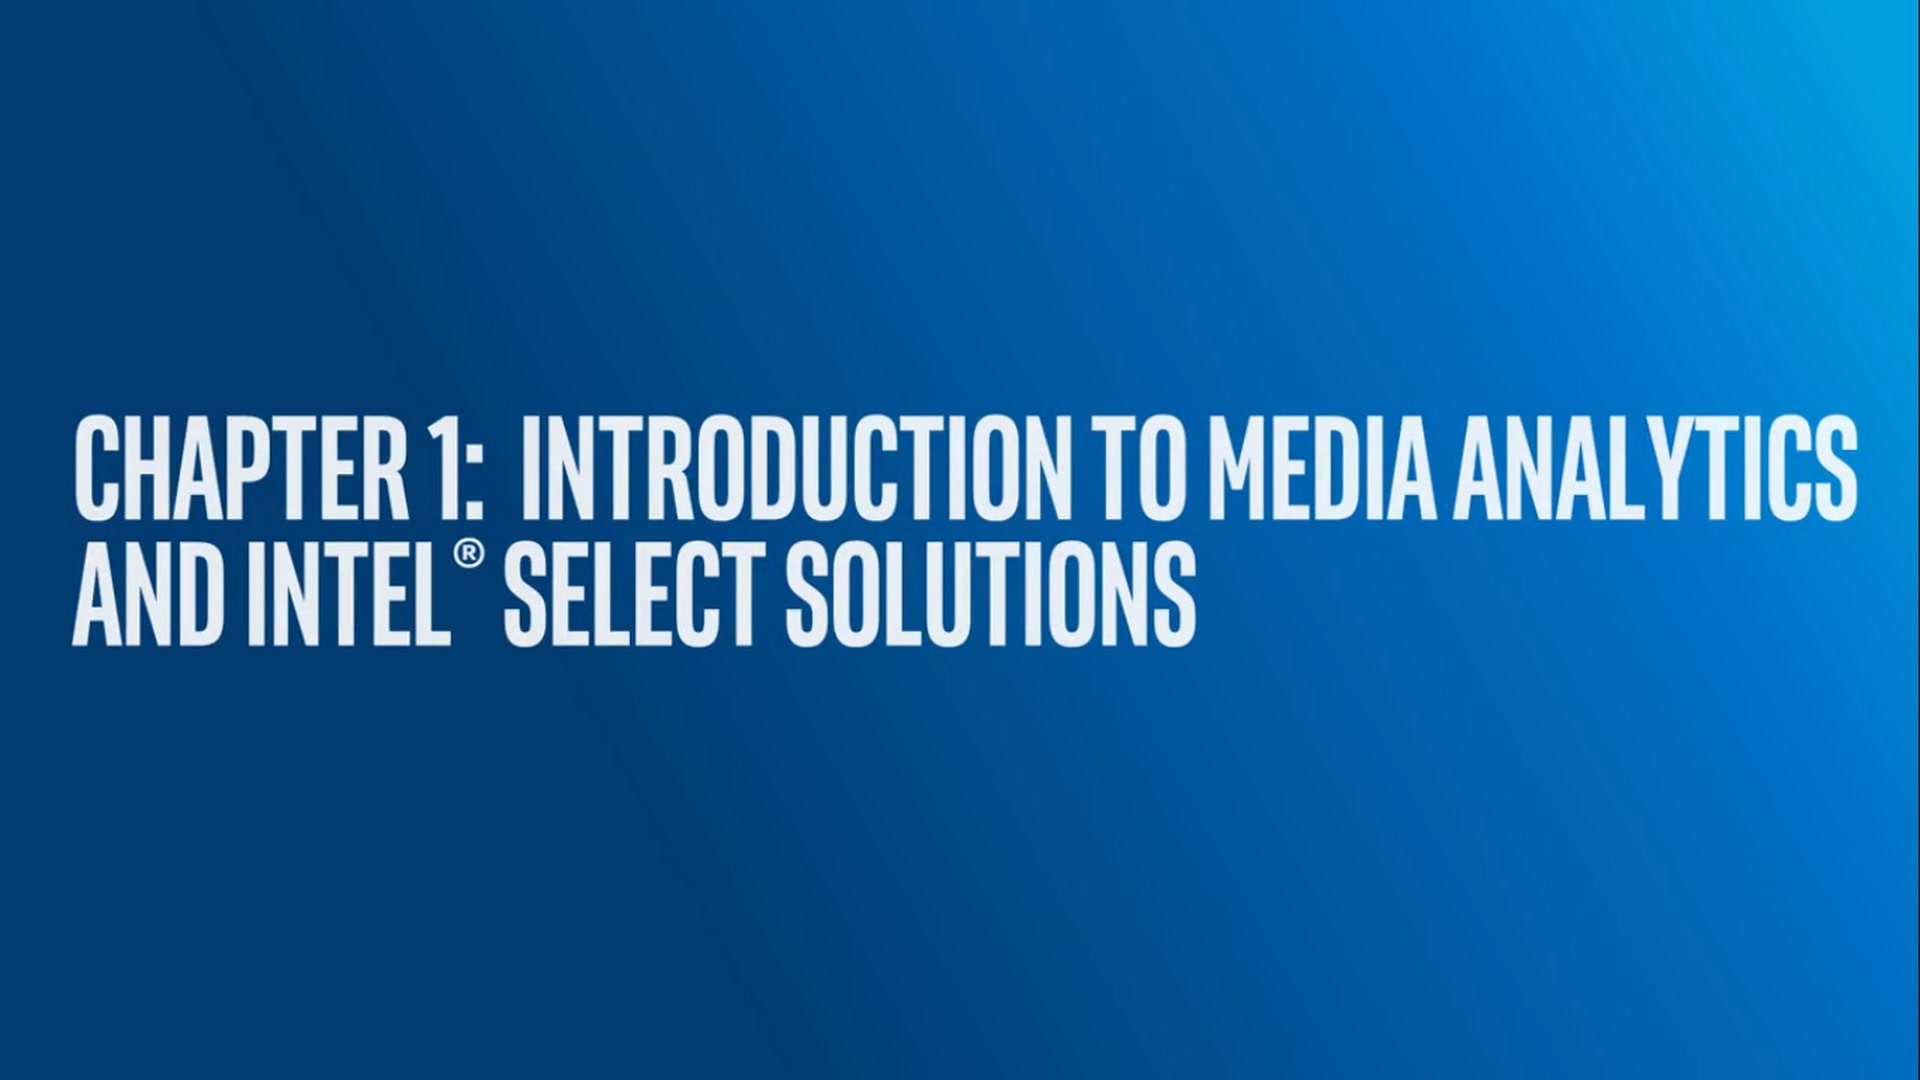 Chapter 1: Introduction to Media Analytics in Visual Cloud